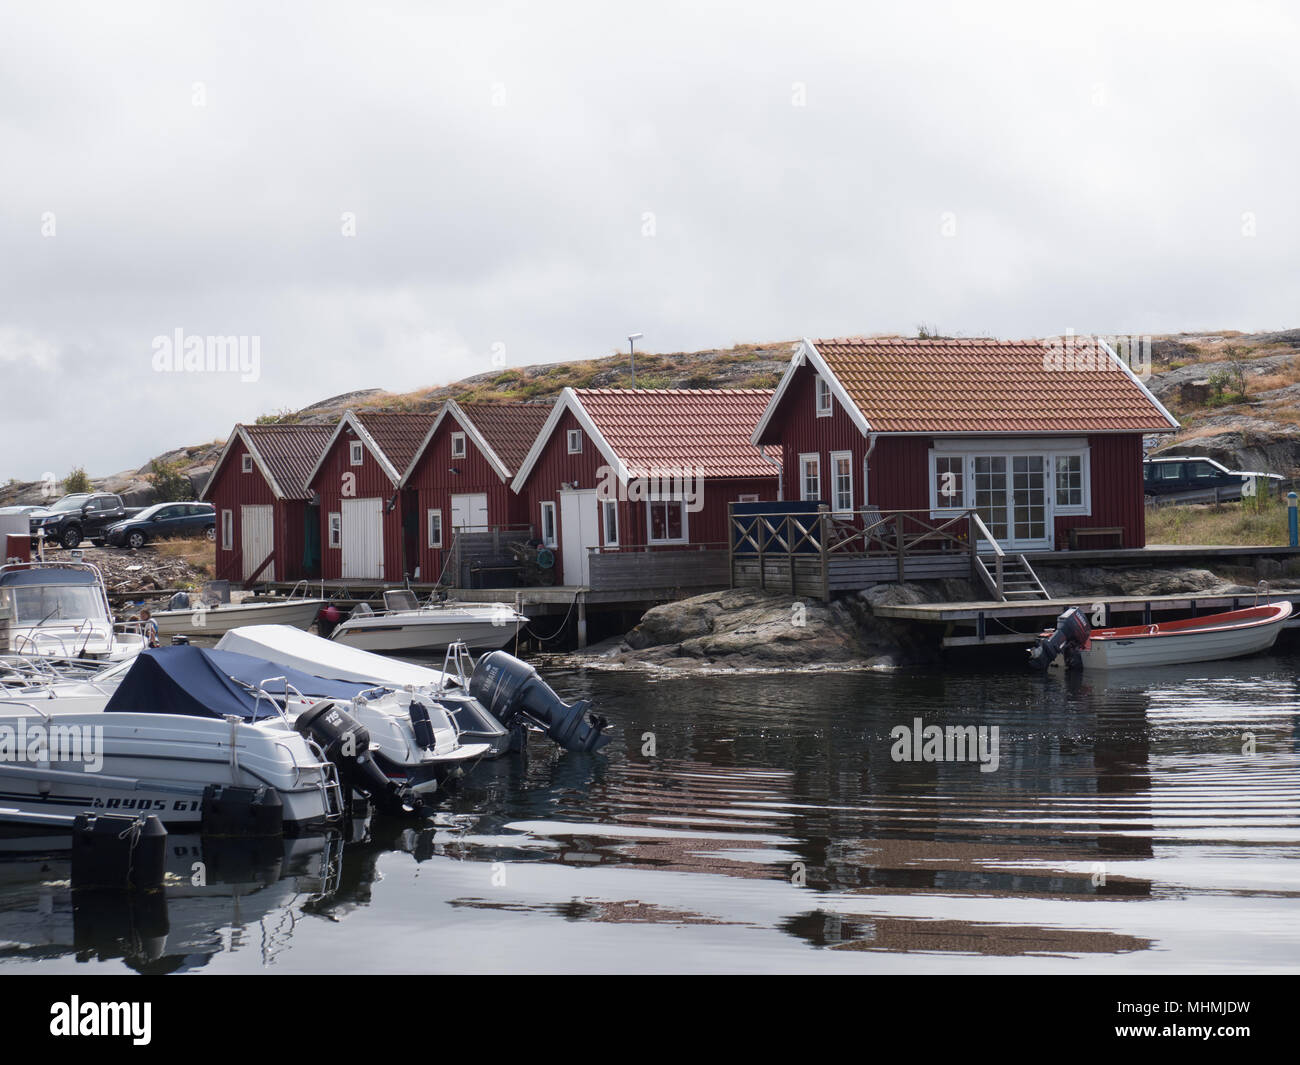 Fish cattages in Smögen, the swedish west coast. An overcast day. - Stock Image